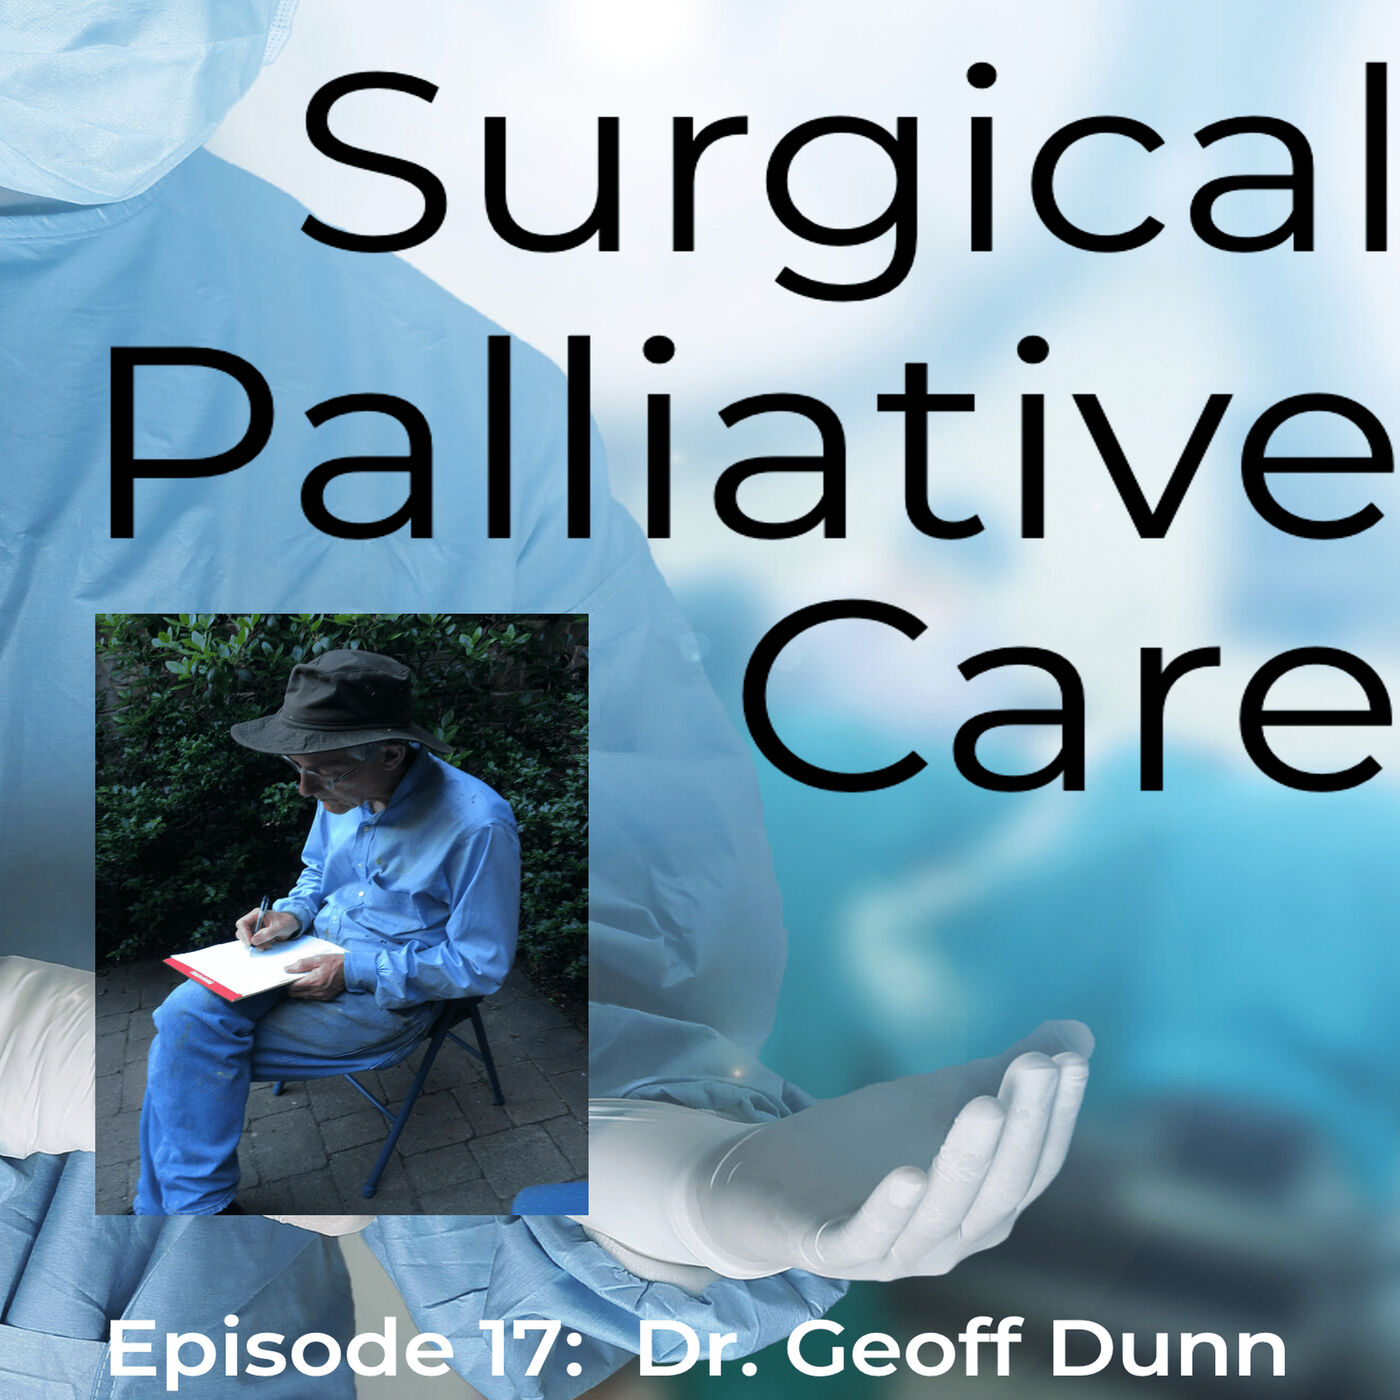 Dr. Geoff Dunn:  The Father of Surgical Palliative Care